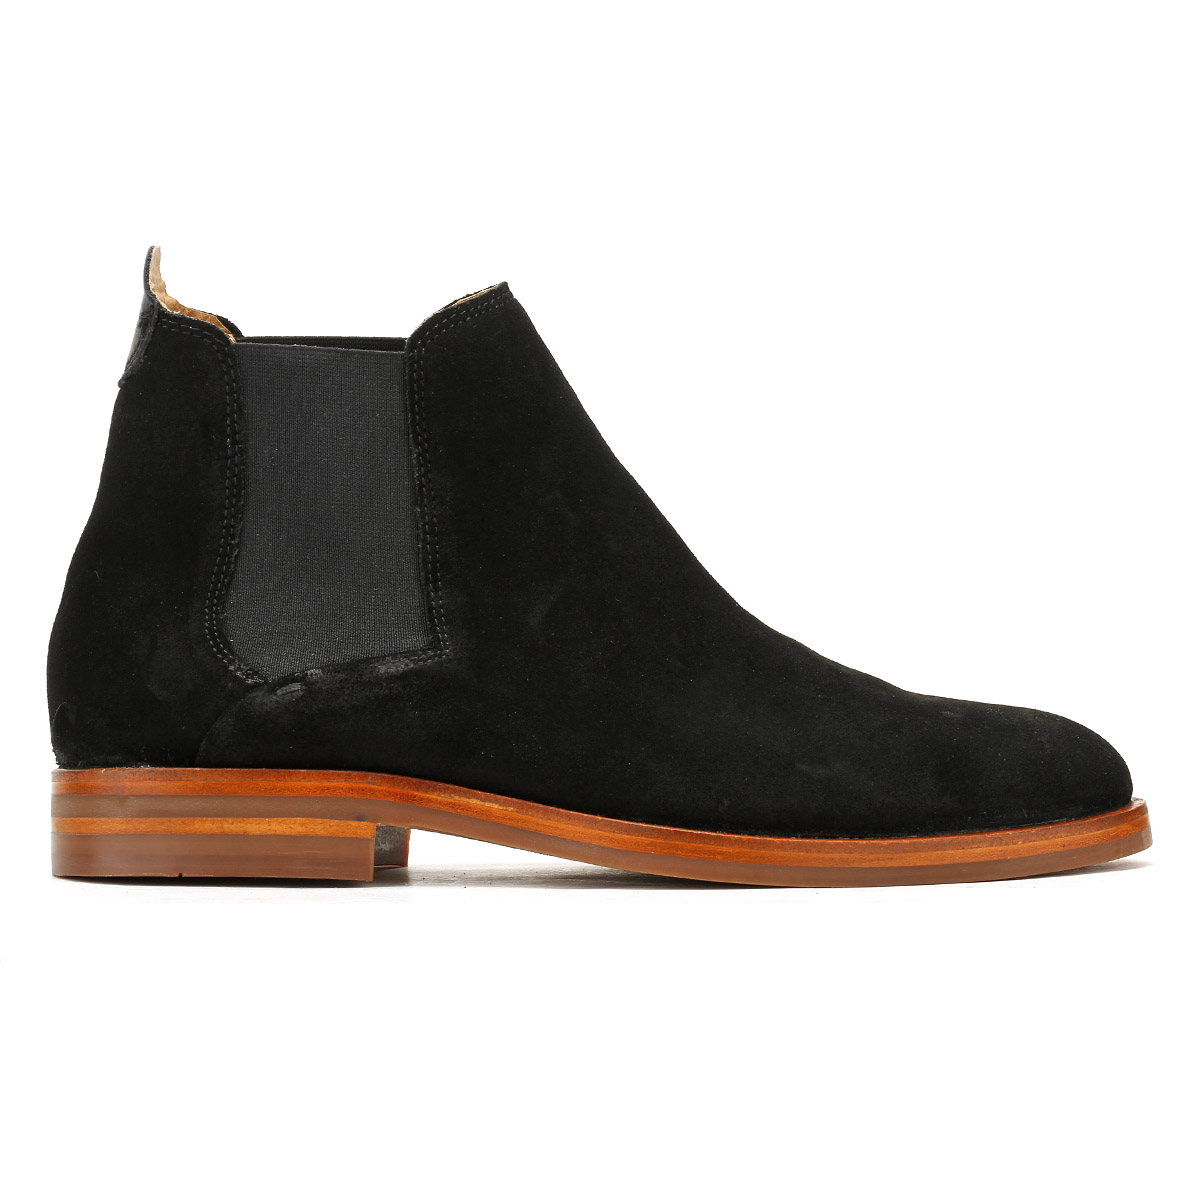 1e7ed0032 The Tonti boots from Hudson have a leather upper with elasticated side  panels